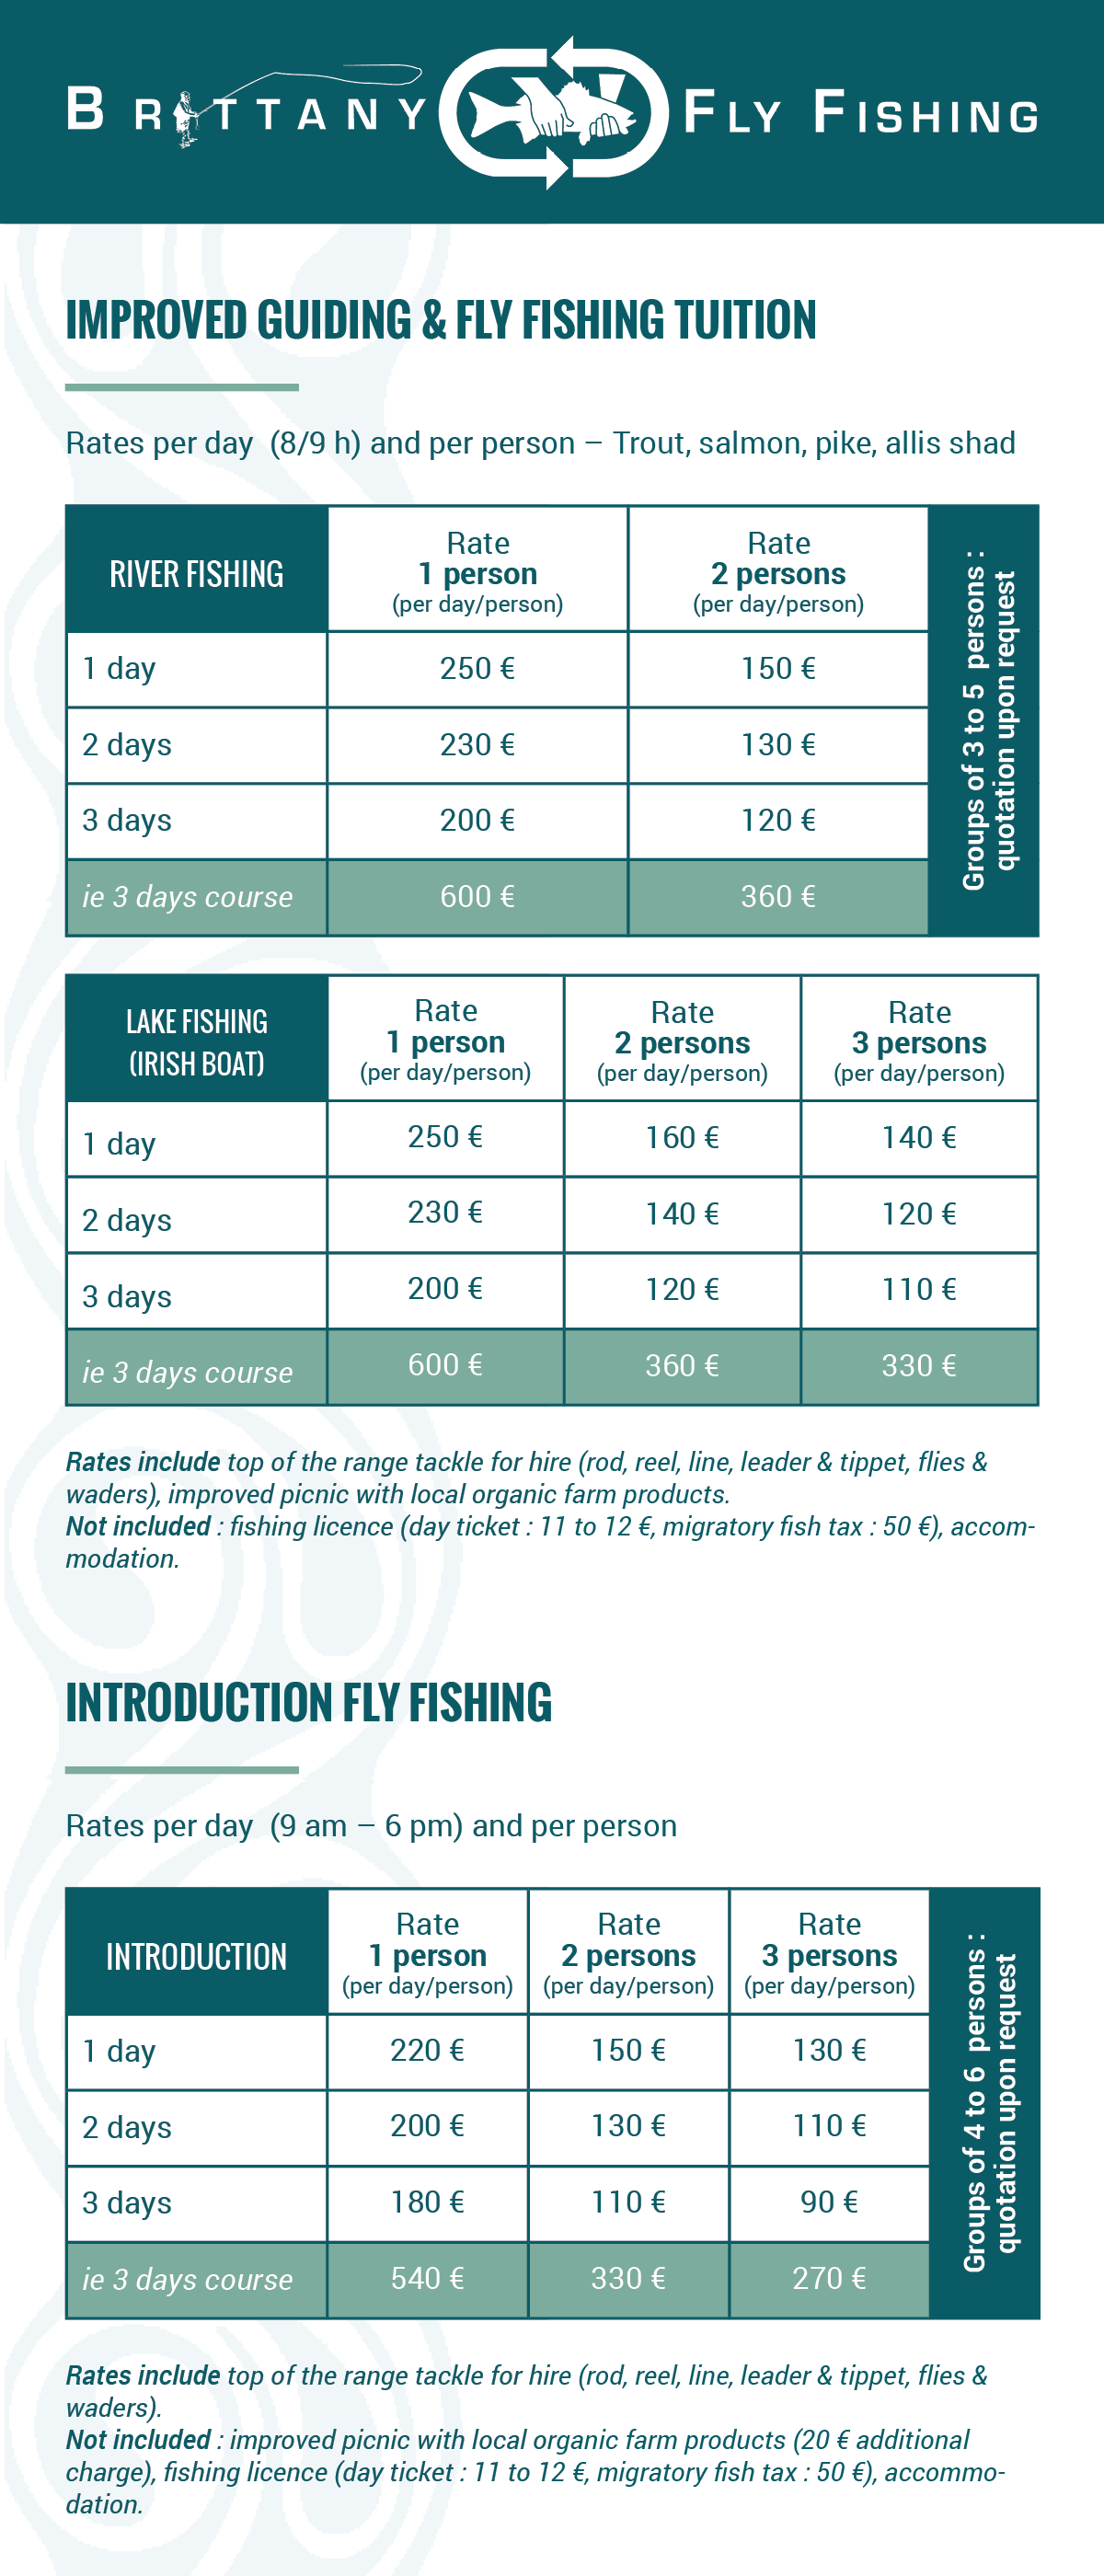 brittany-fly-fishing-tarifs-eng-2019